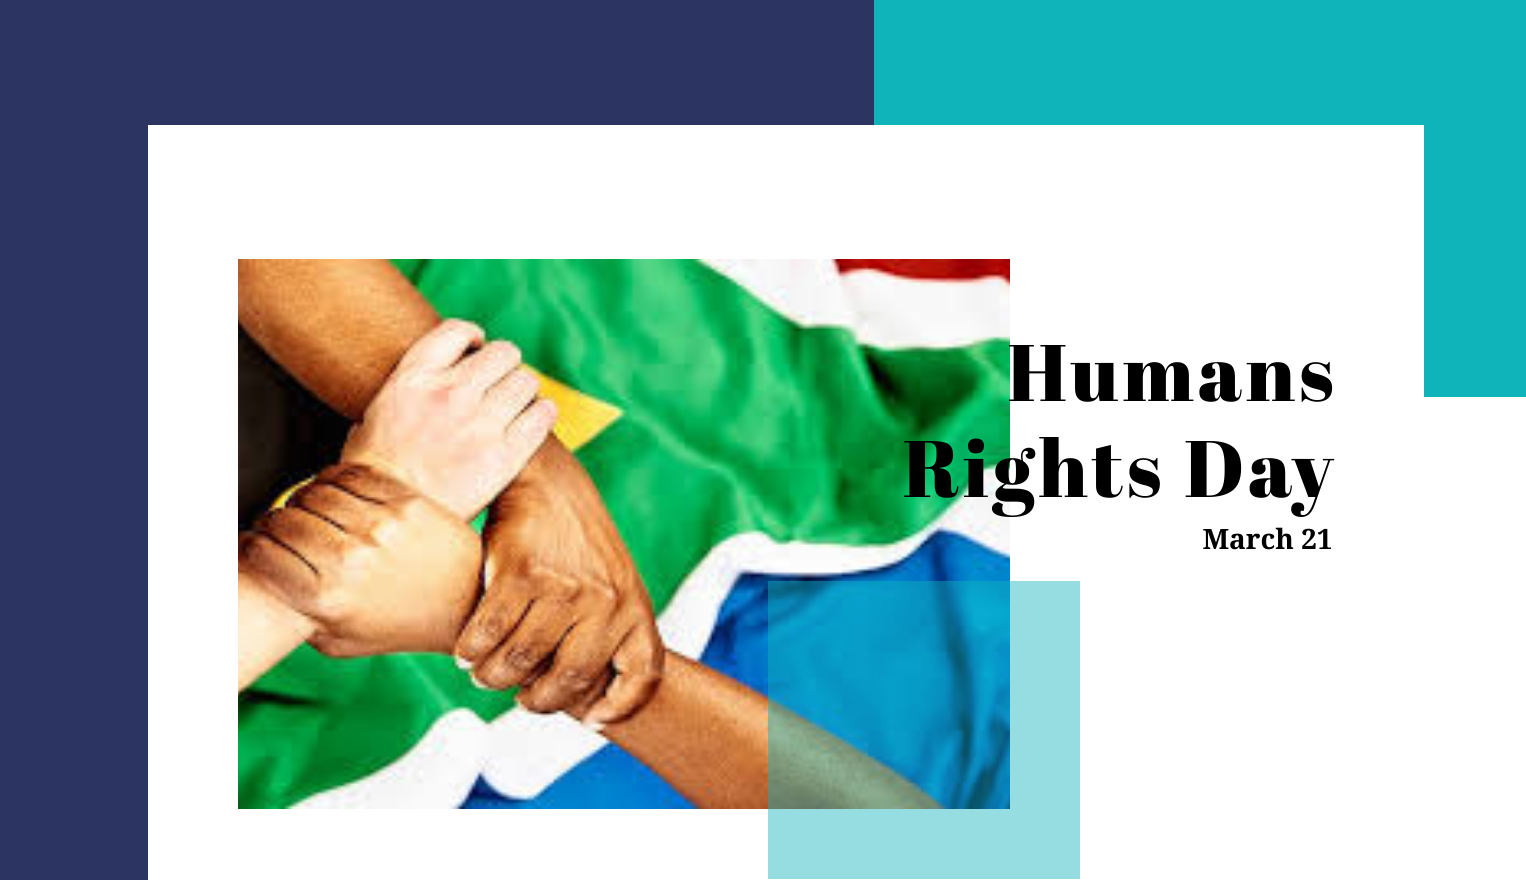 https://www.sihma.org.za/photos/shares/Human Rights Day Infographic.png